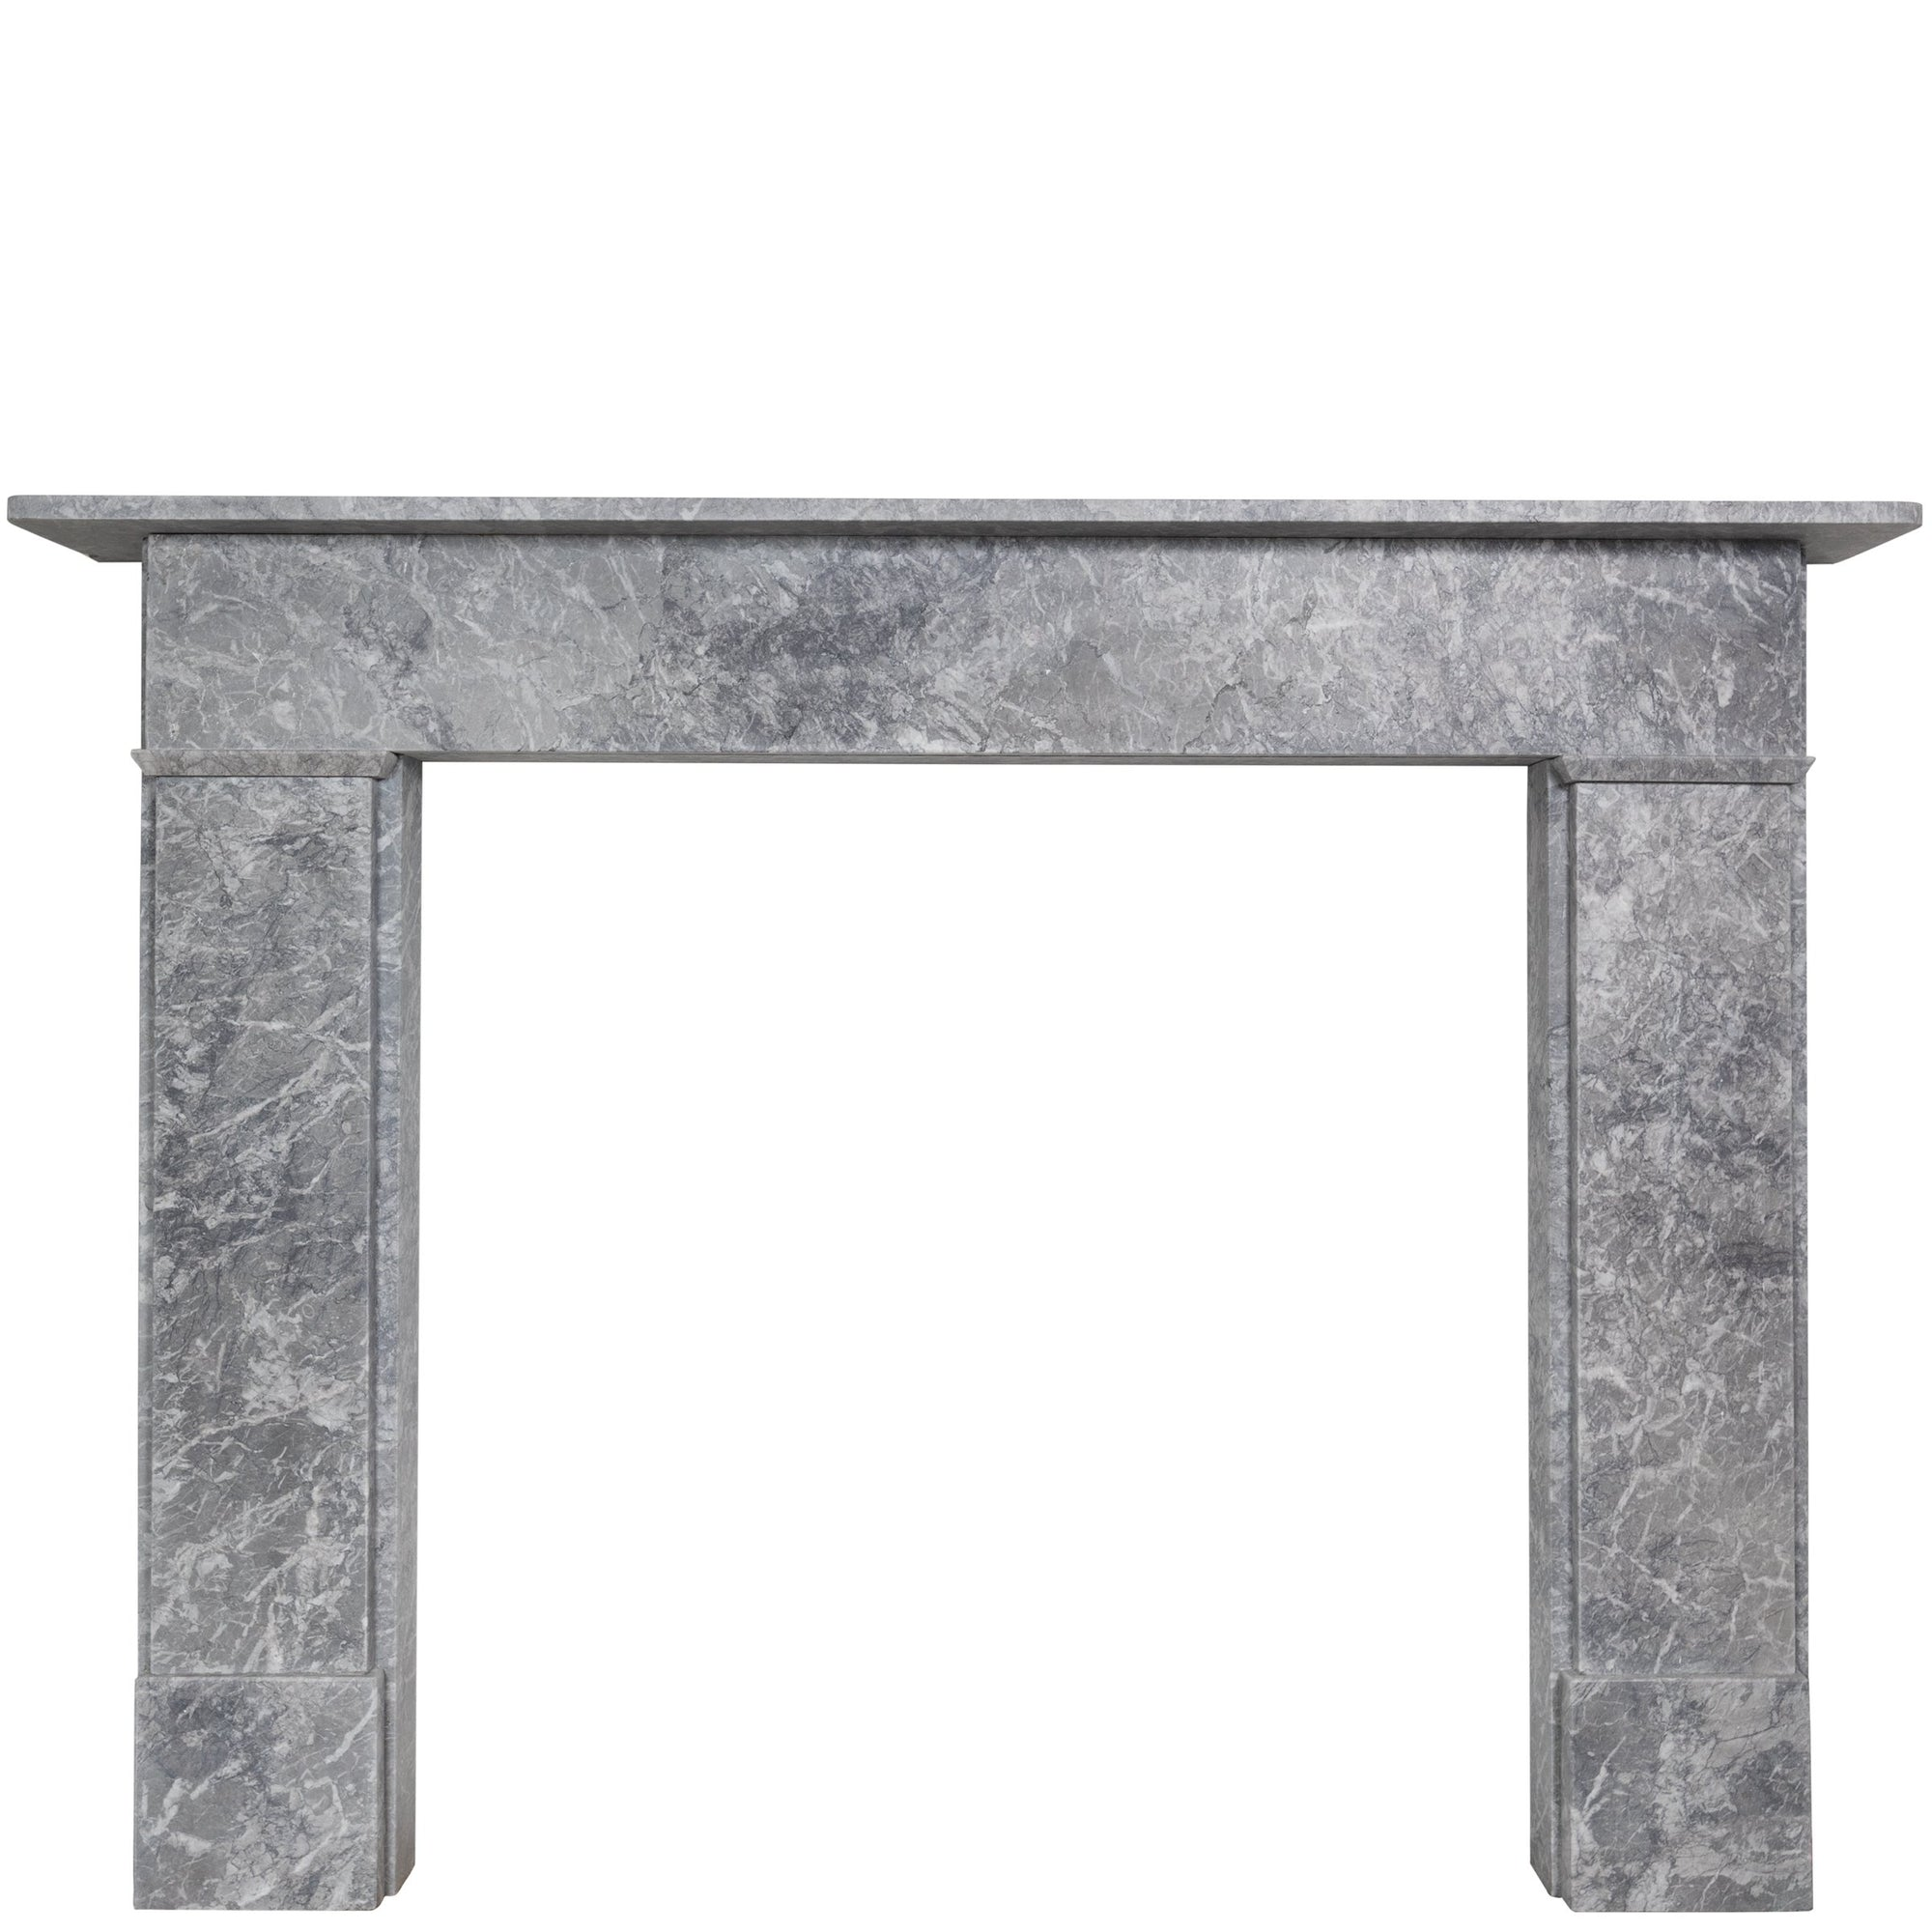 Late Georgian Style Surround with Grey Marble from Scotland Yard